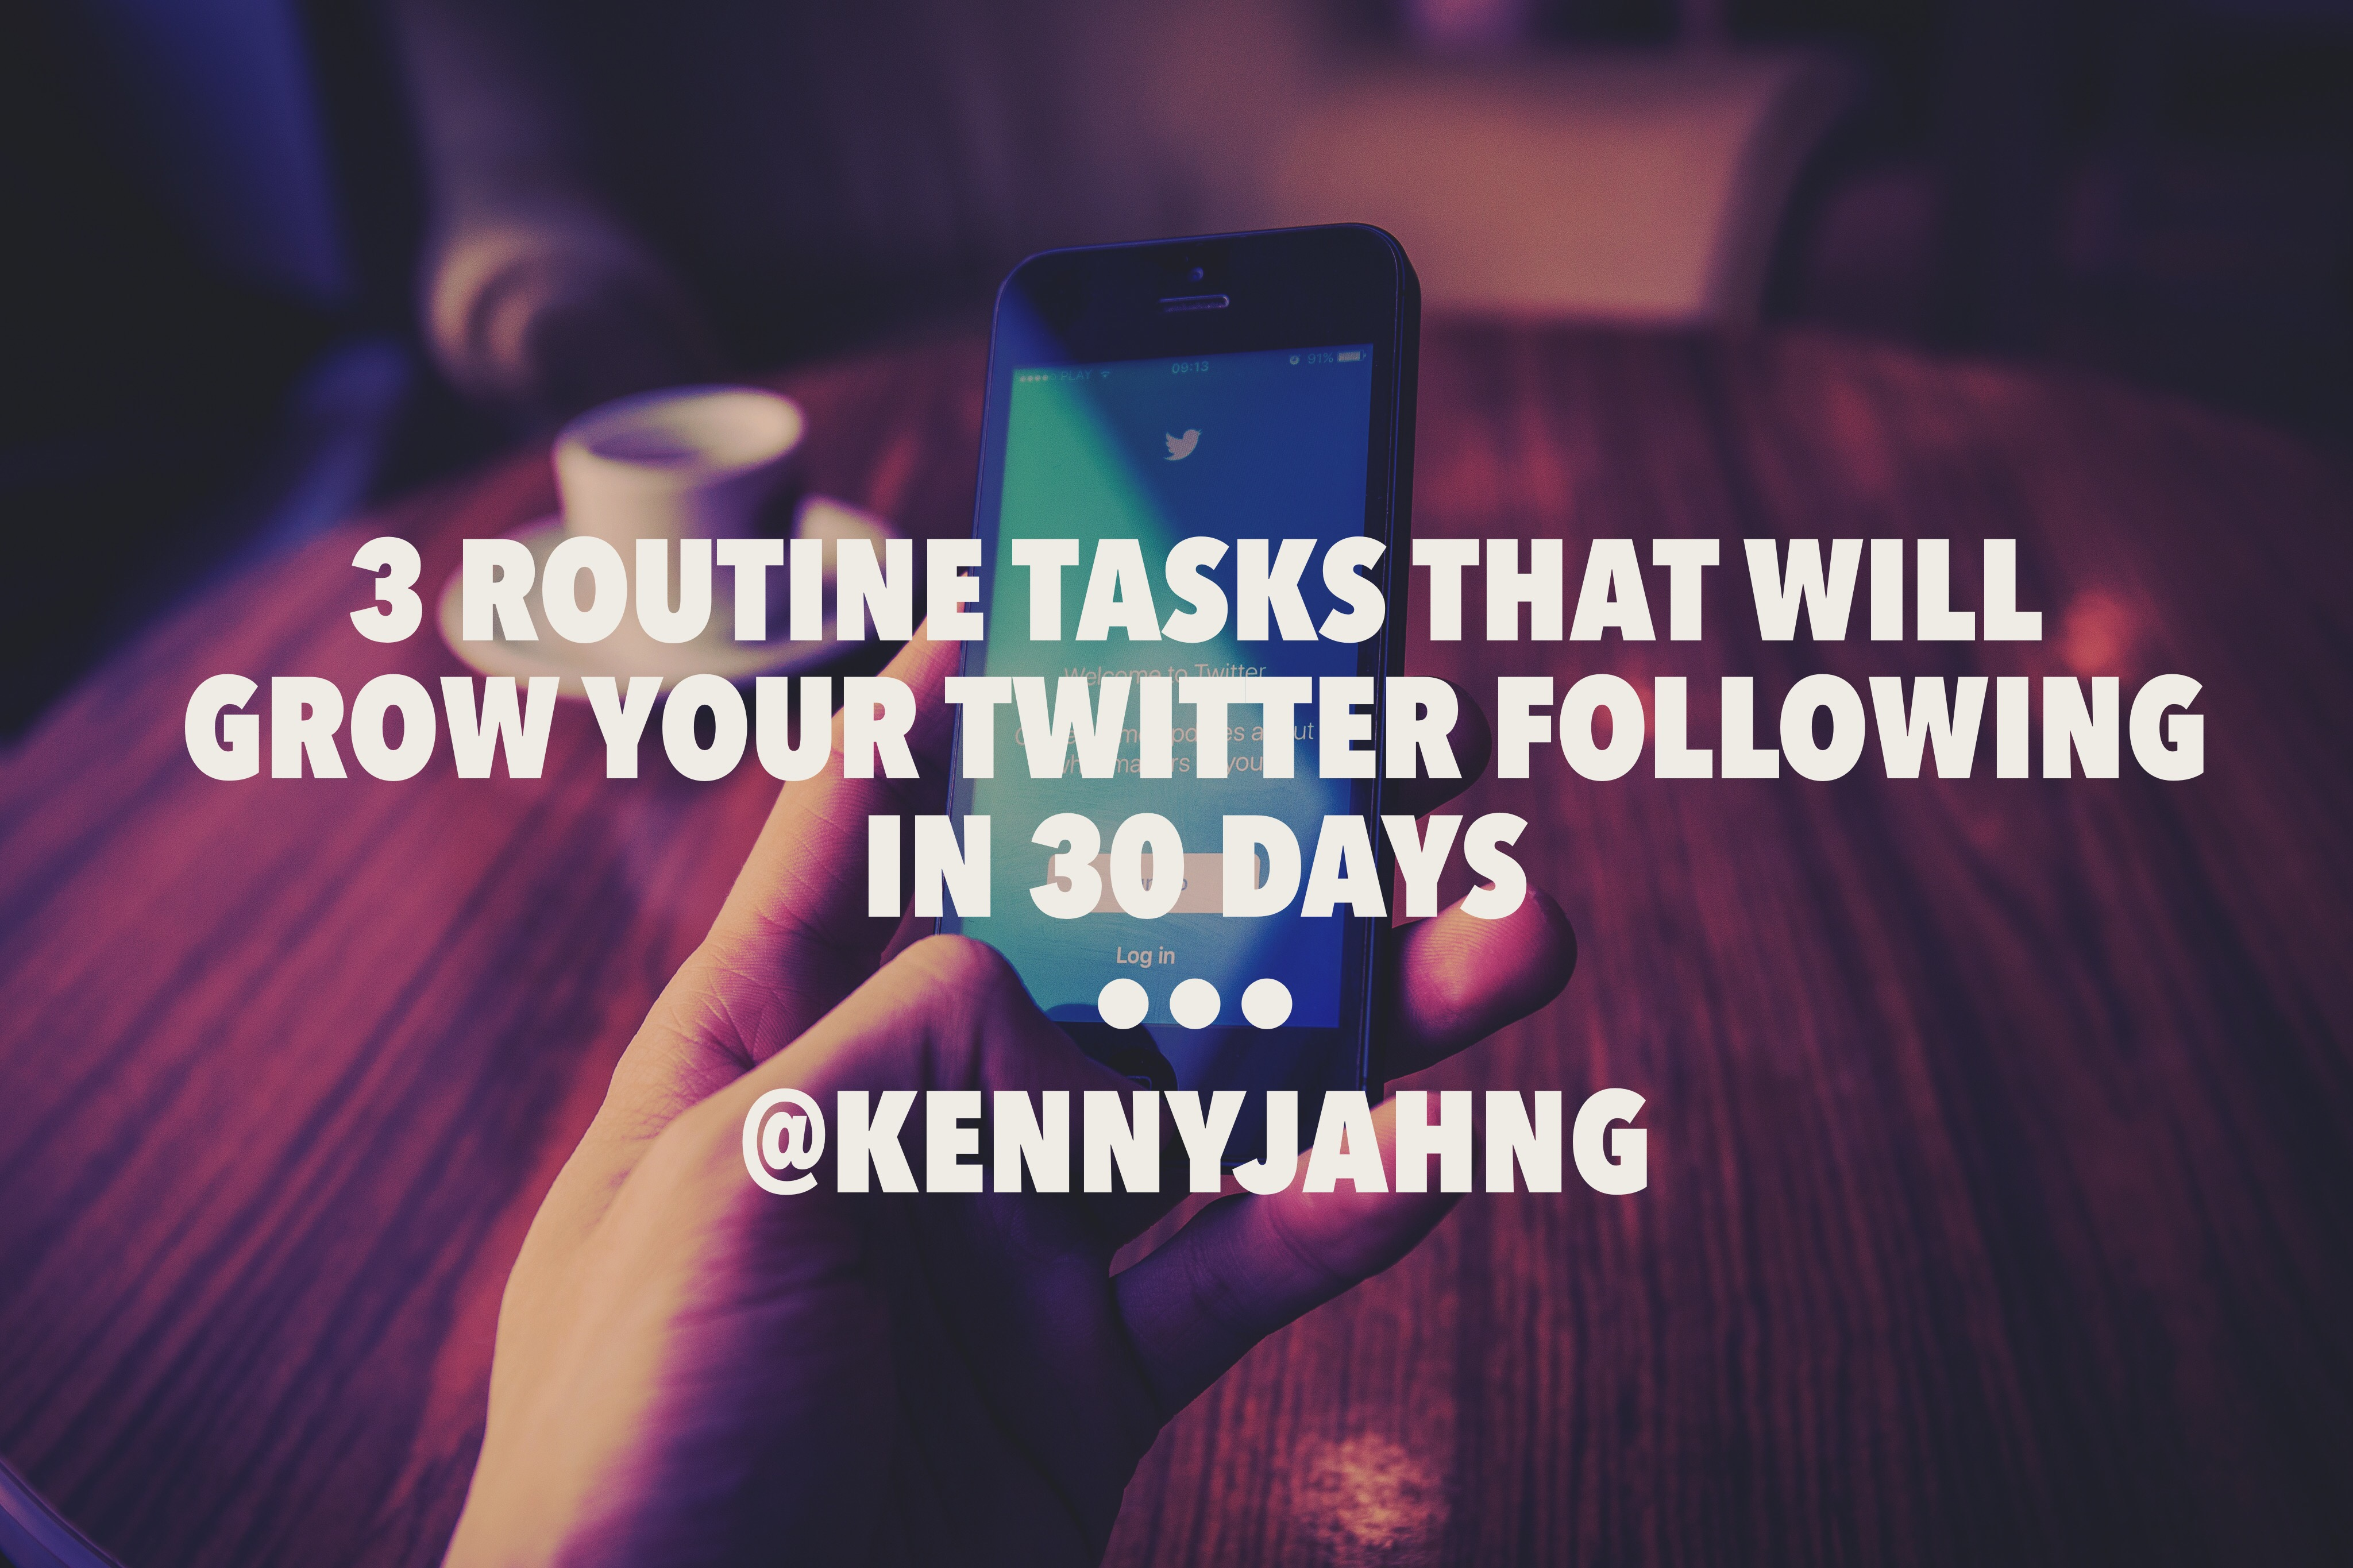 3 Things To Do on Twitter To Grow Your Follower Count